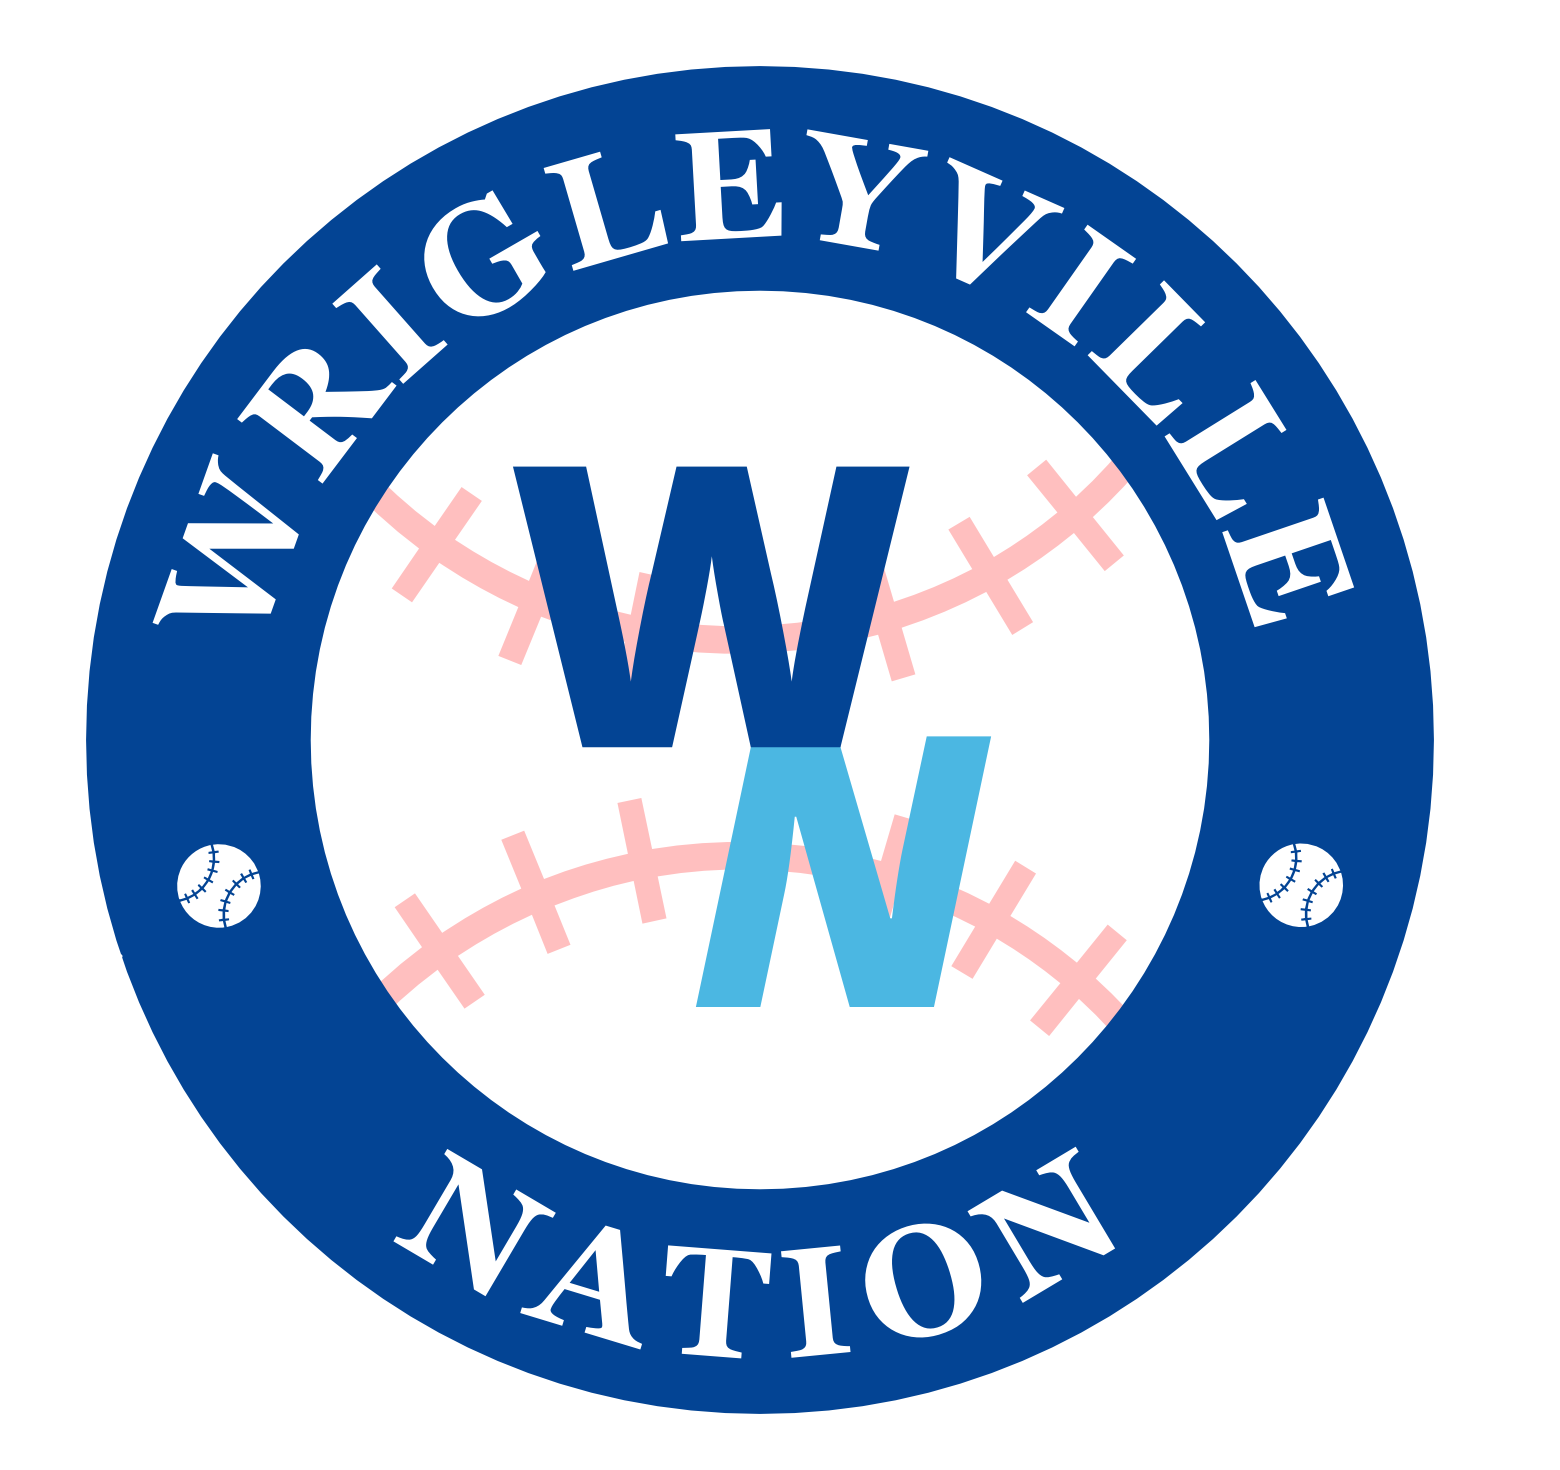 Wrigleyville Nation Ep 234 - Guest: Andy Dolan, Final Week Preview, Injuries, & More show art